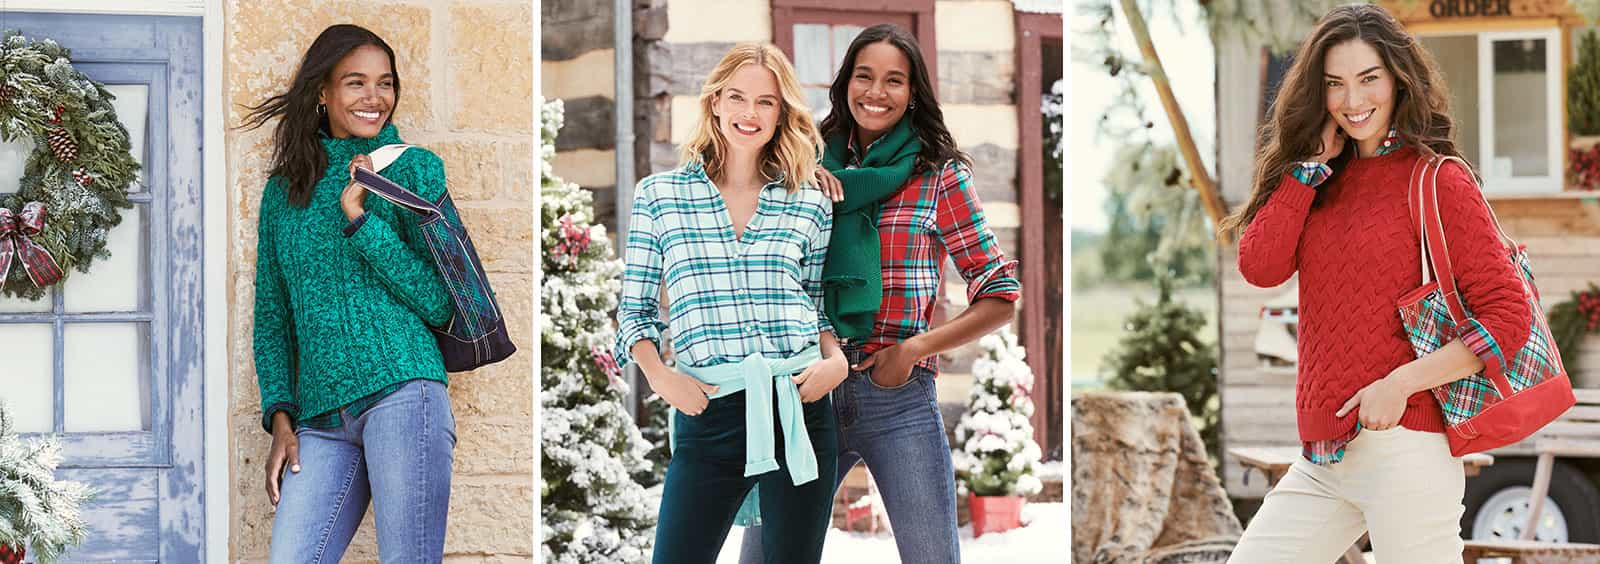 How to Stay Stylish Without Sacrificing Comfort This Holiday Season   Lands' End